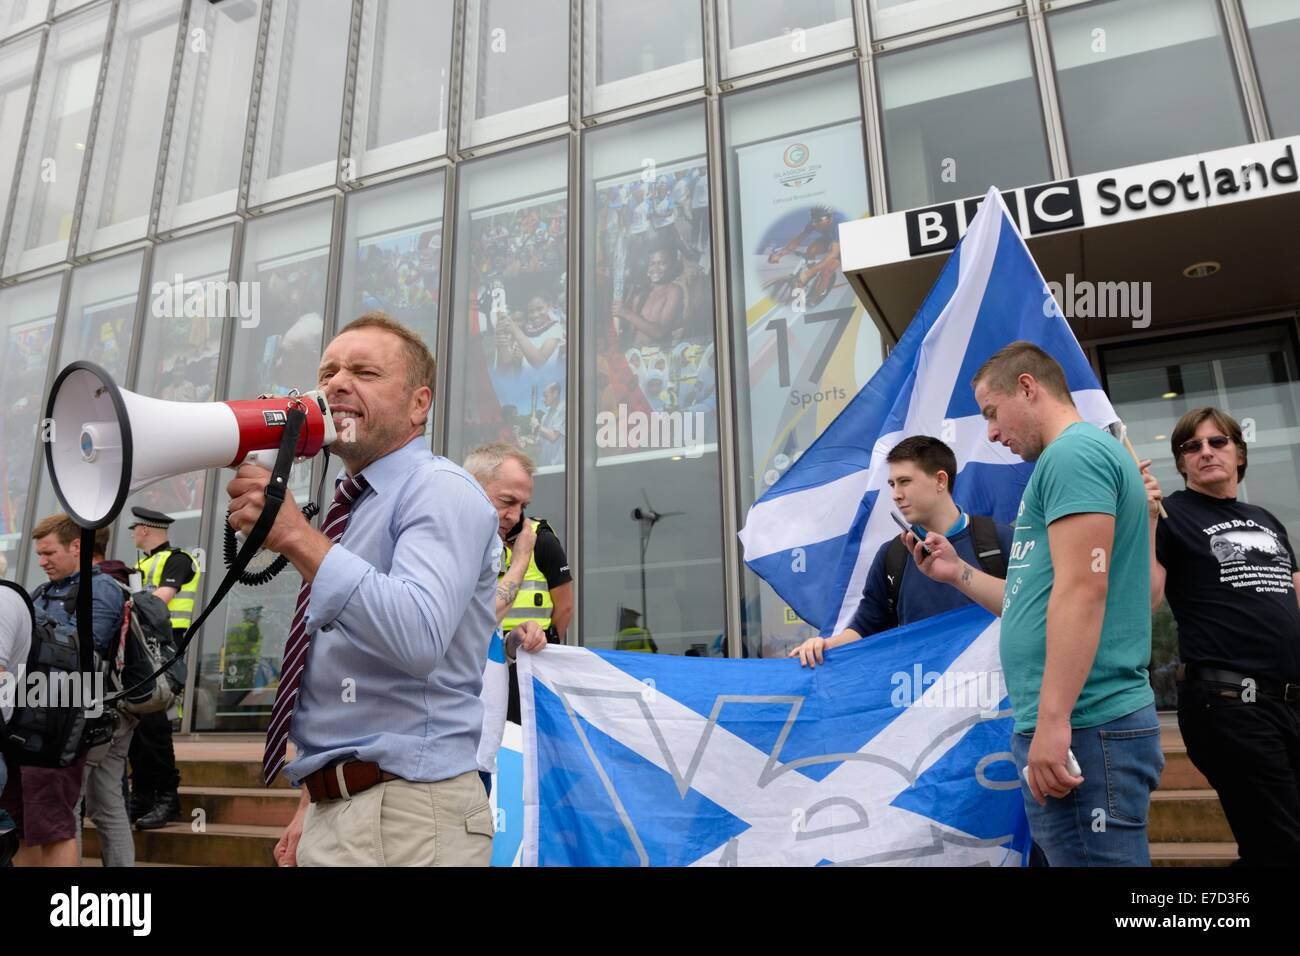 Glasgow, Scotland. 14th September, 2014. BBC Protest march. A significant amount of 'yes' voters marched through Stock Photo